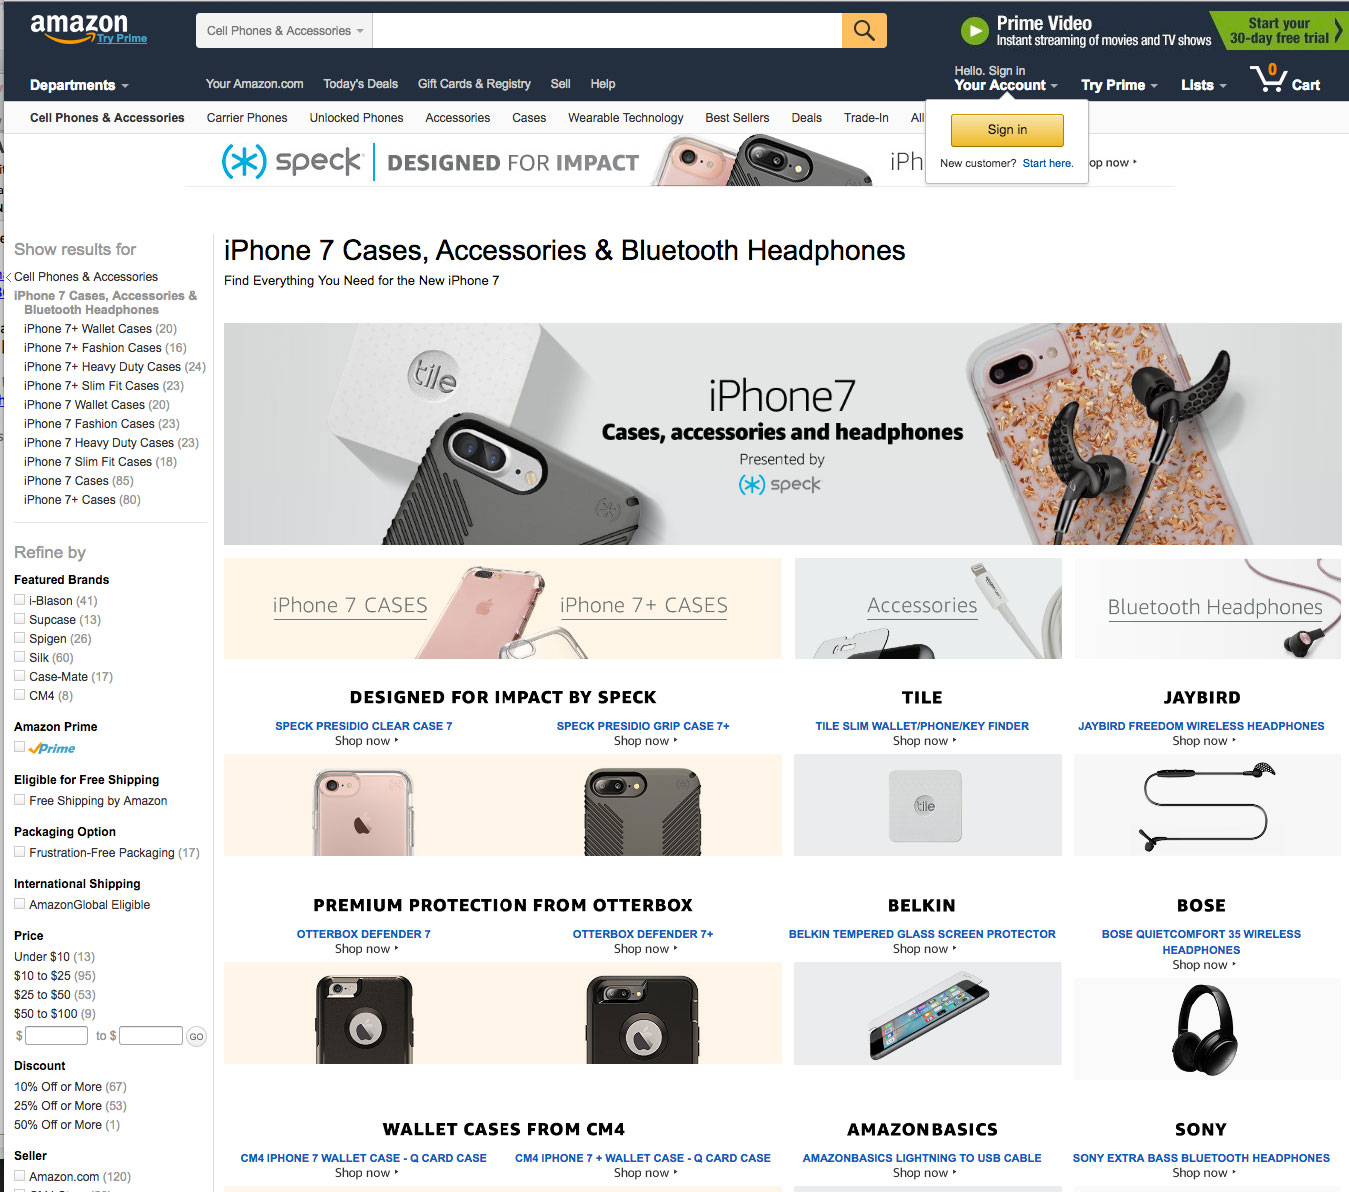 Amazon reveals new iPhone before Apple's big unveiling